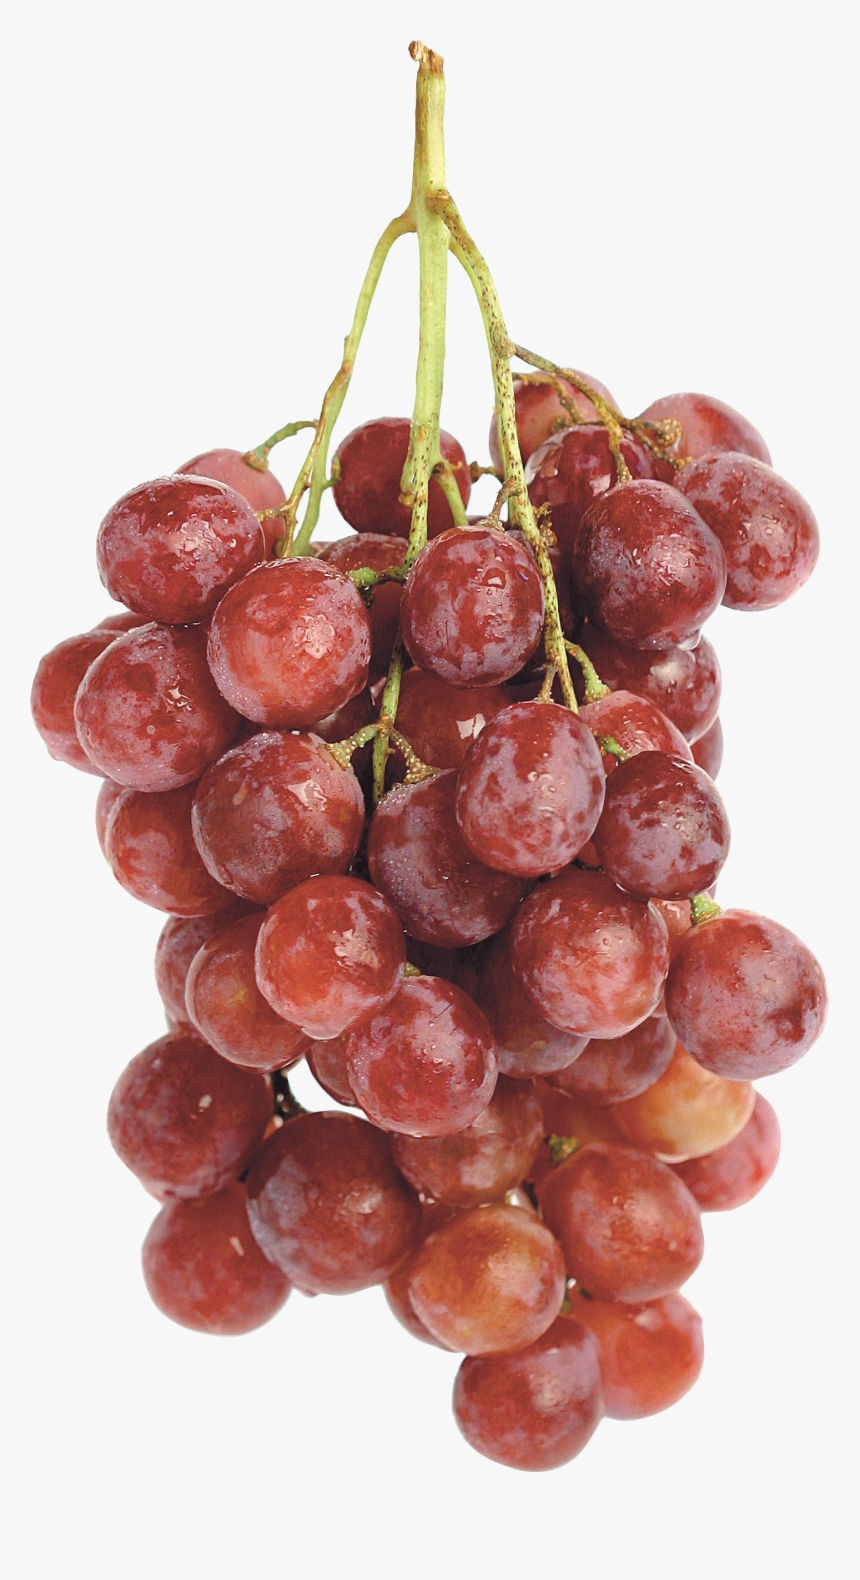 Red Grapes Png Image - Red Grapes Transparent Background, Png Download, Free Download